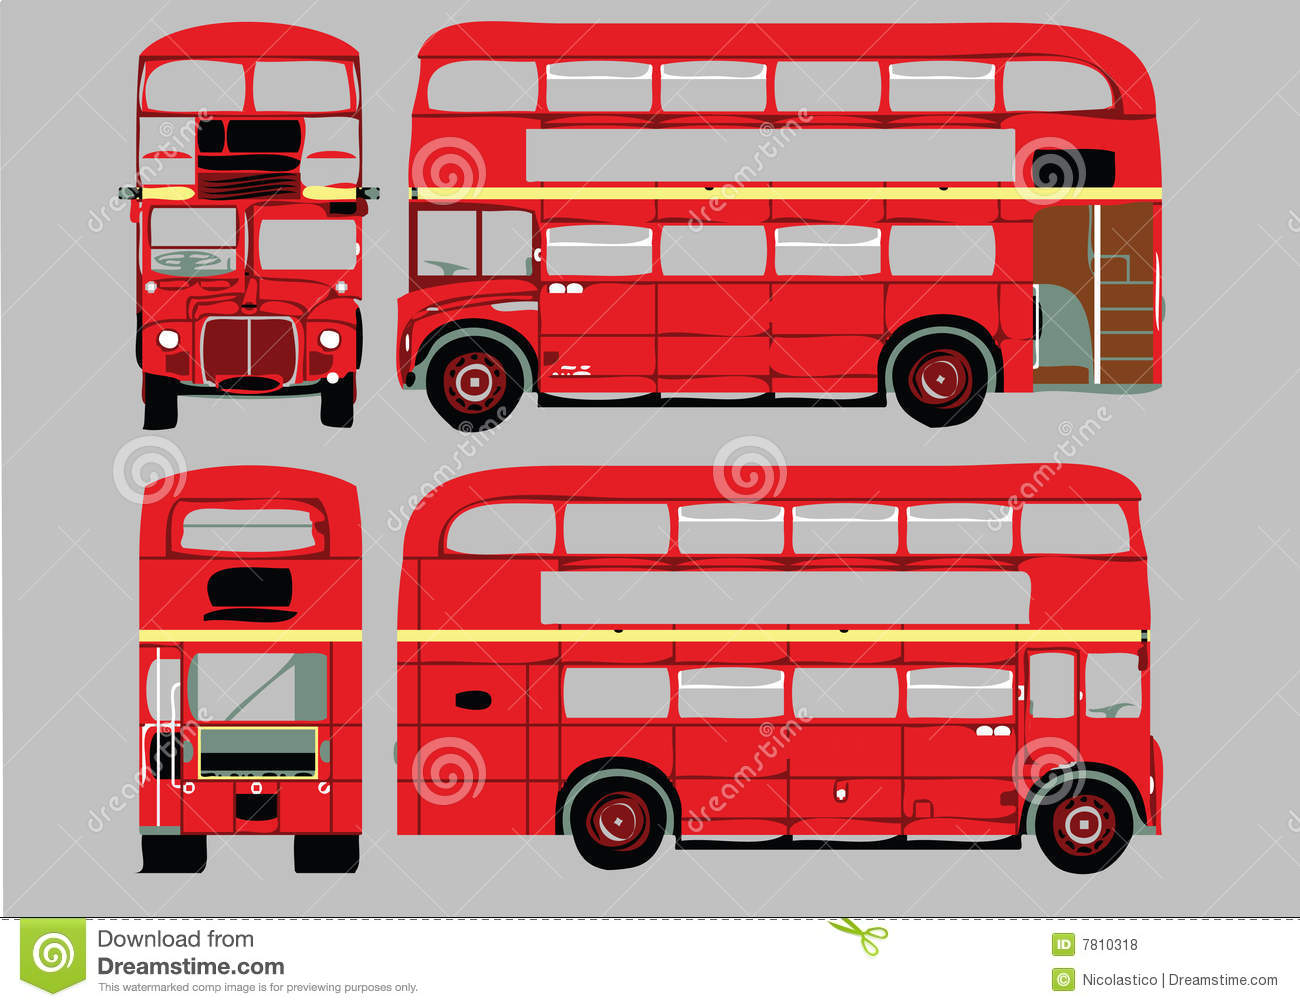 Double de pont de bus illustration de vecteur - Dessin bus anglais ...